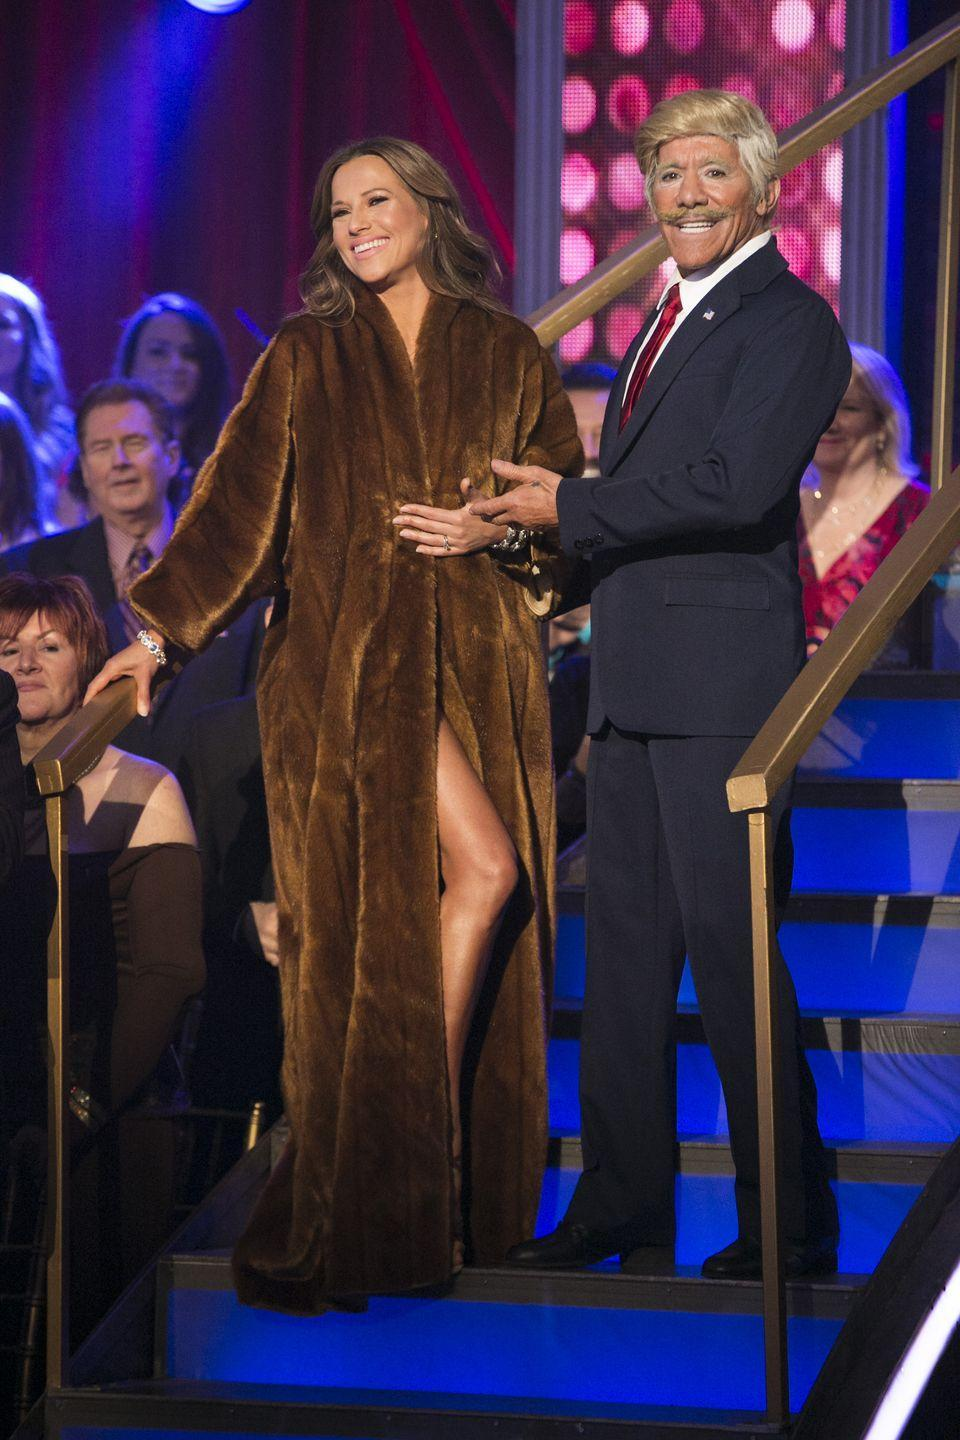 <p>During the first week of season 22, the TV personality dressed up as Donald Trump and his partner, Edyta Śliwińska, looked very Melania-like. The move was controversial, to say the least. It also came off as awkward and forced. So, yeah, the pair was eliminated after the first week.  </p><p>An added bit of awkwardness? Donald Trump's ex-wife, Marla Maples, was also competing on the season and was watching the performance with the other contestants backstage.</p>